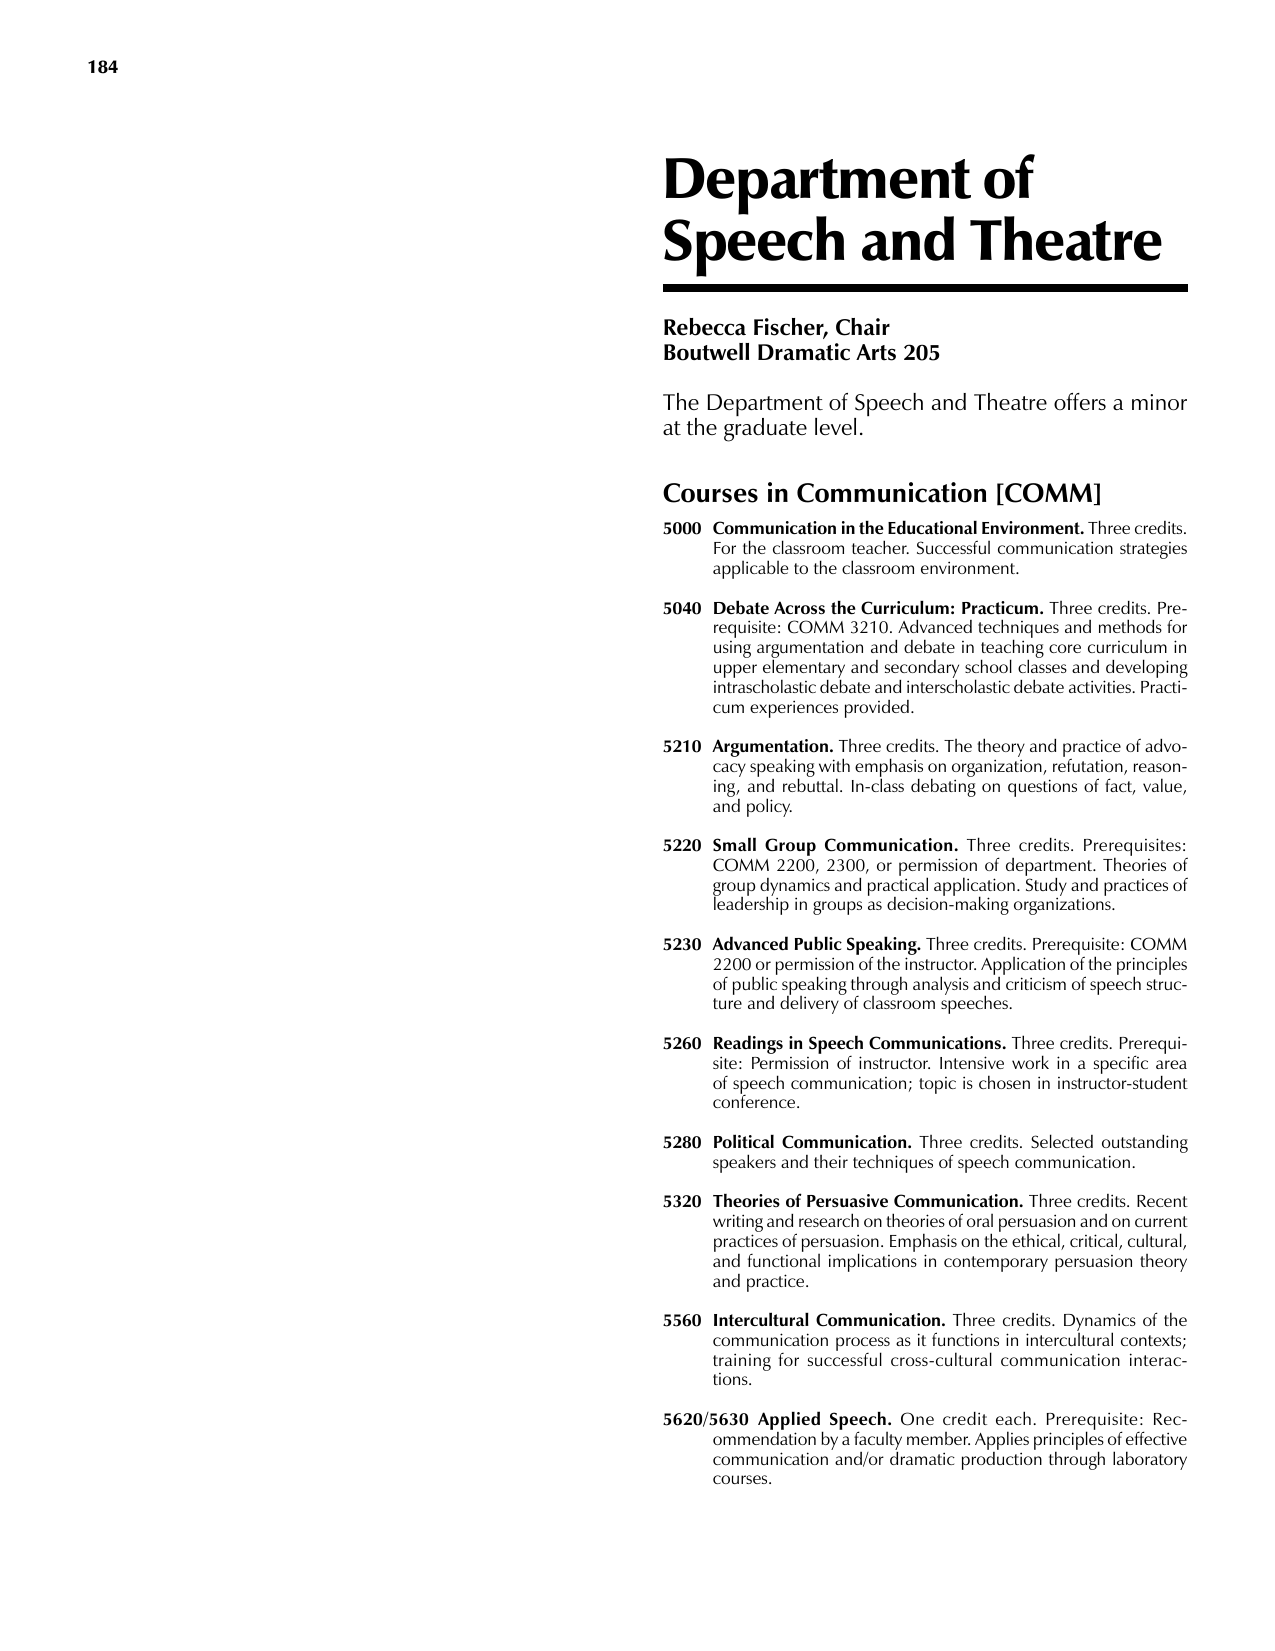 Department of Speech and Theatre Courses in Communication